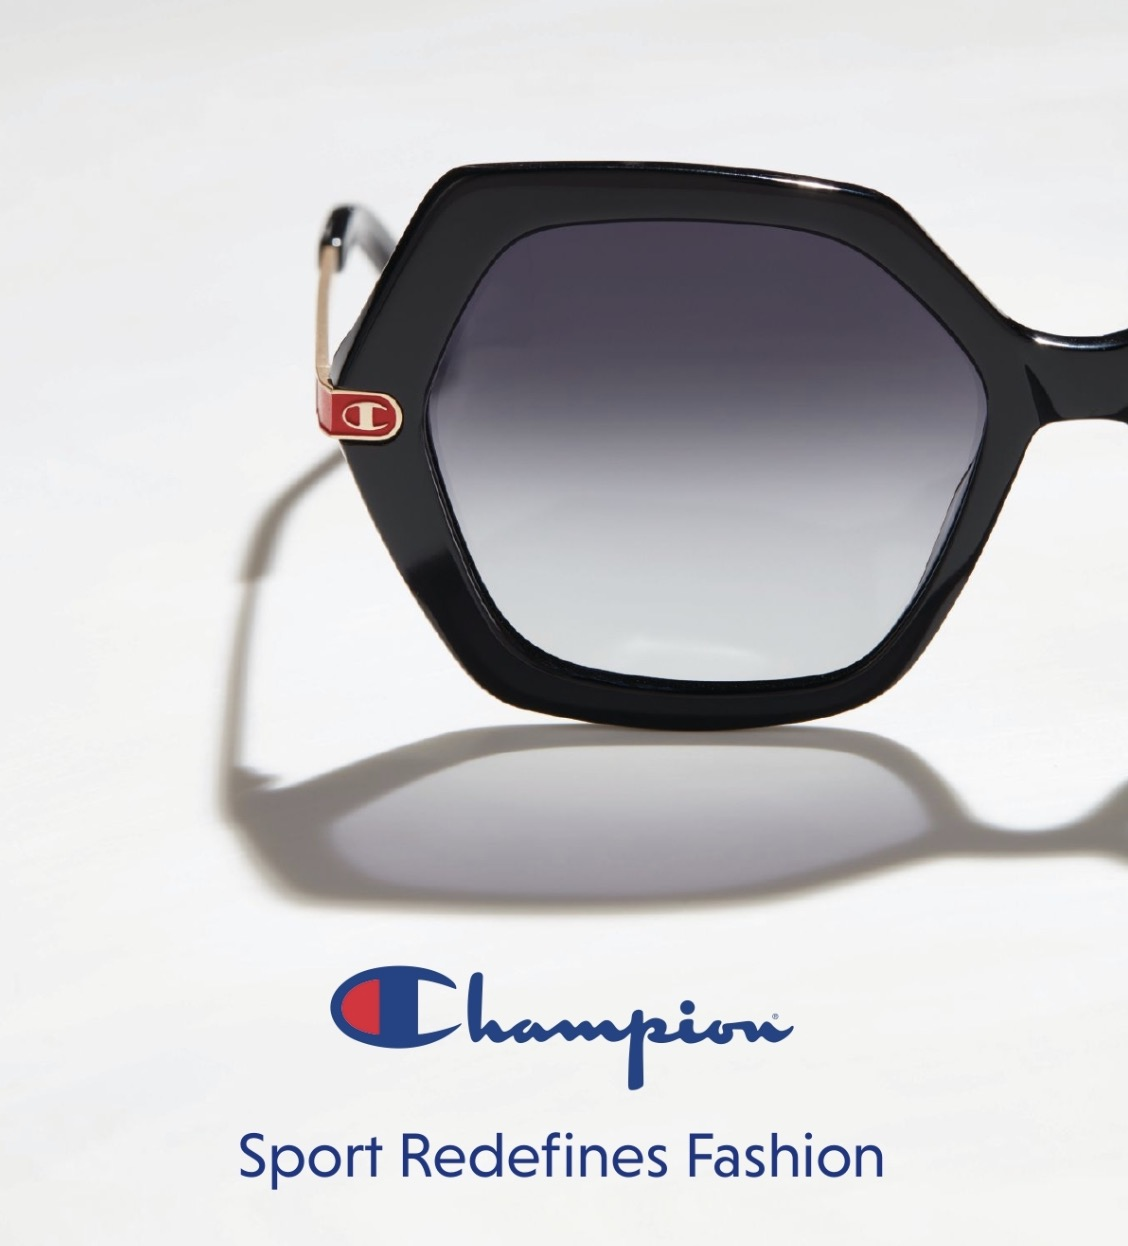 Champion Sunglasses with Gradient Tint